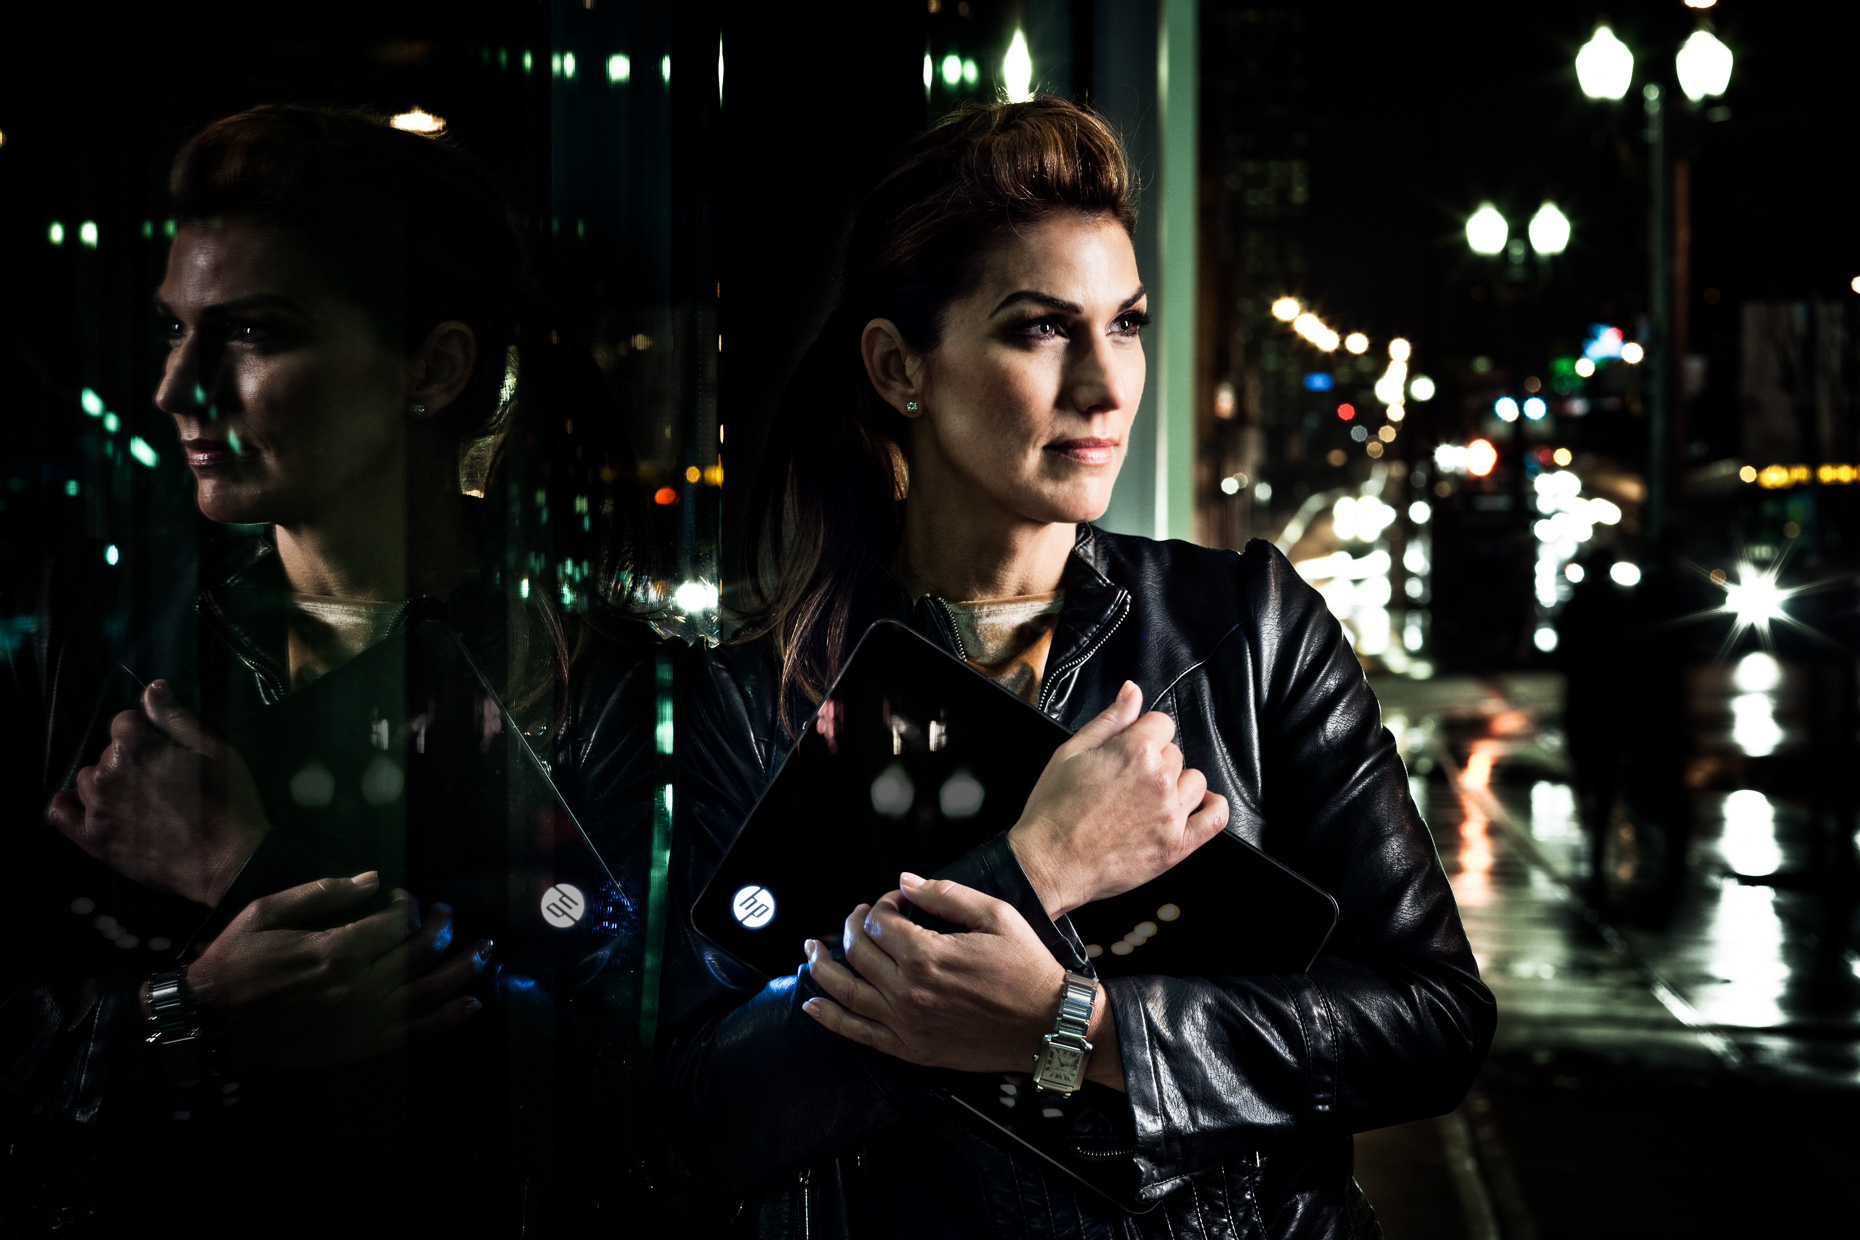 Model Tina Kraft for HP Spectre laptop campaign in urban downtown Portland by Andy Batt.